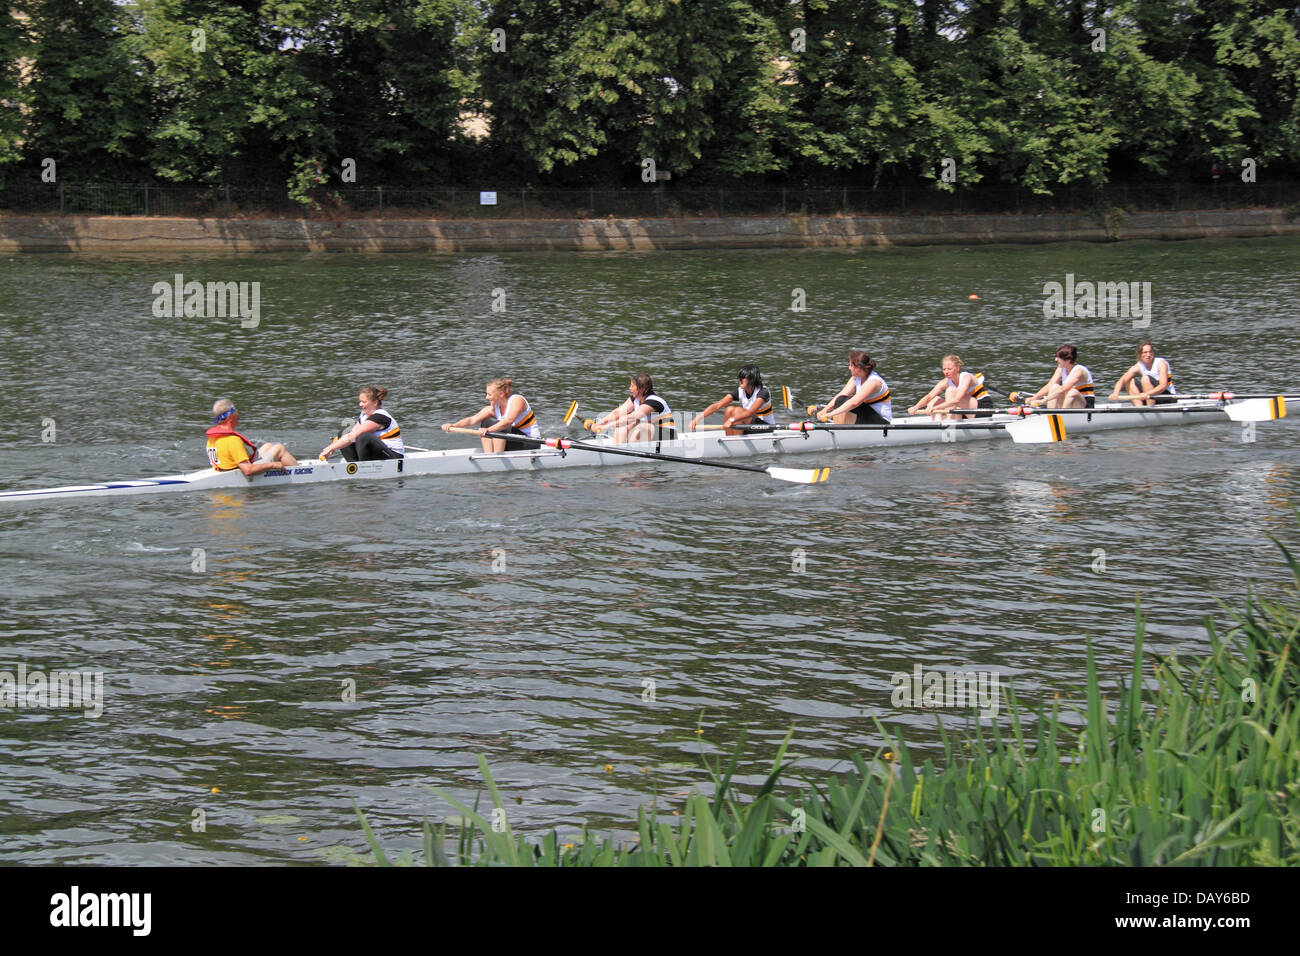 Poplar and Blackwell Rowing Club women's coxed eight at Molesey Amateur Regatta, 20th July 2013, River Thames, - Stock Image